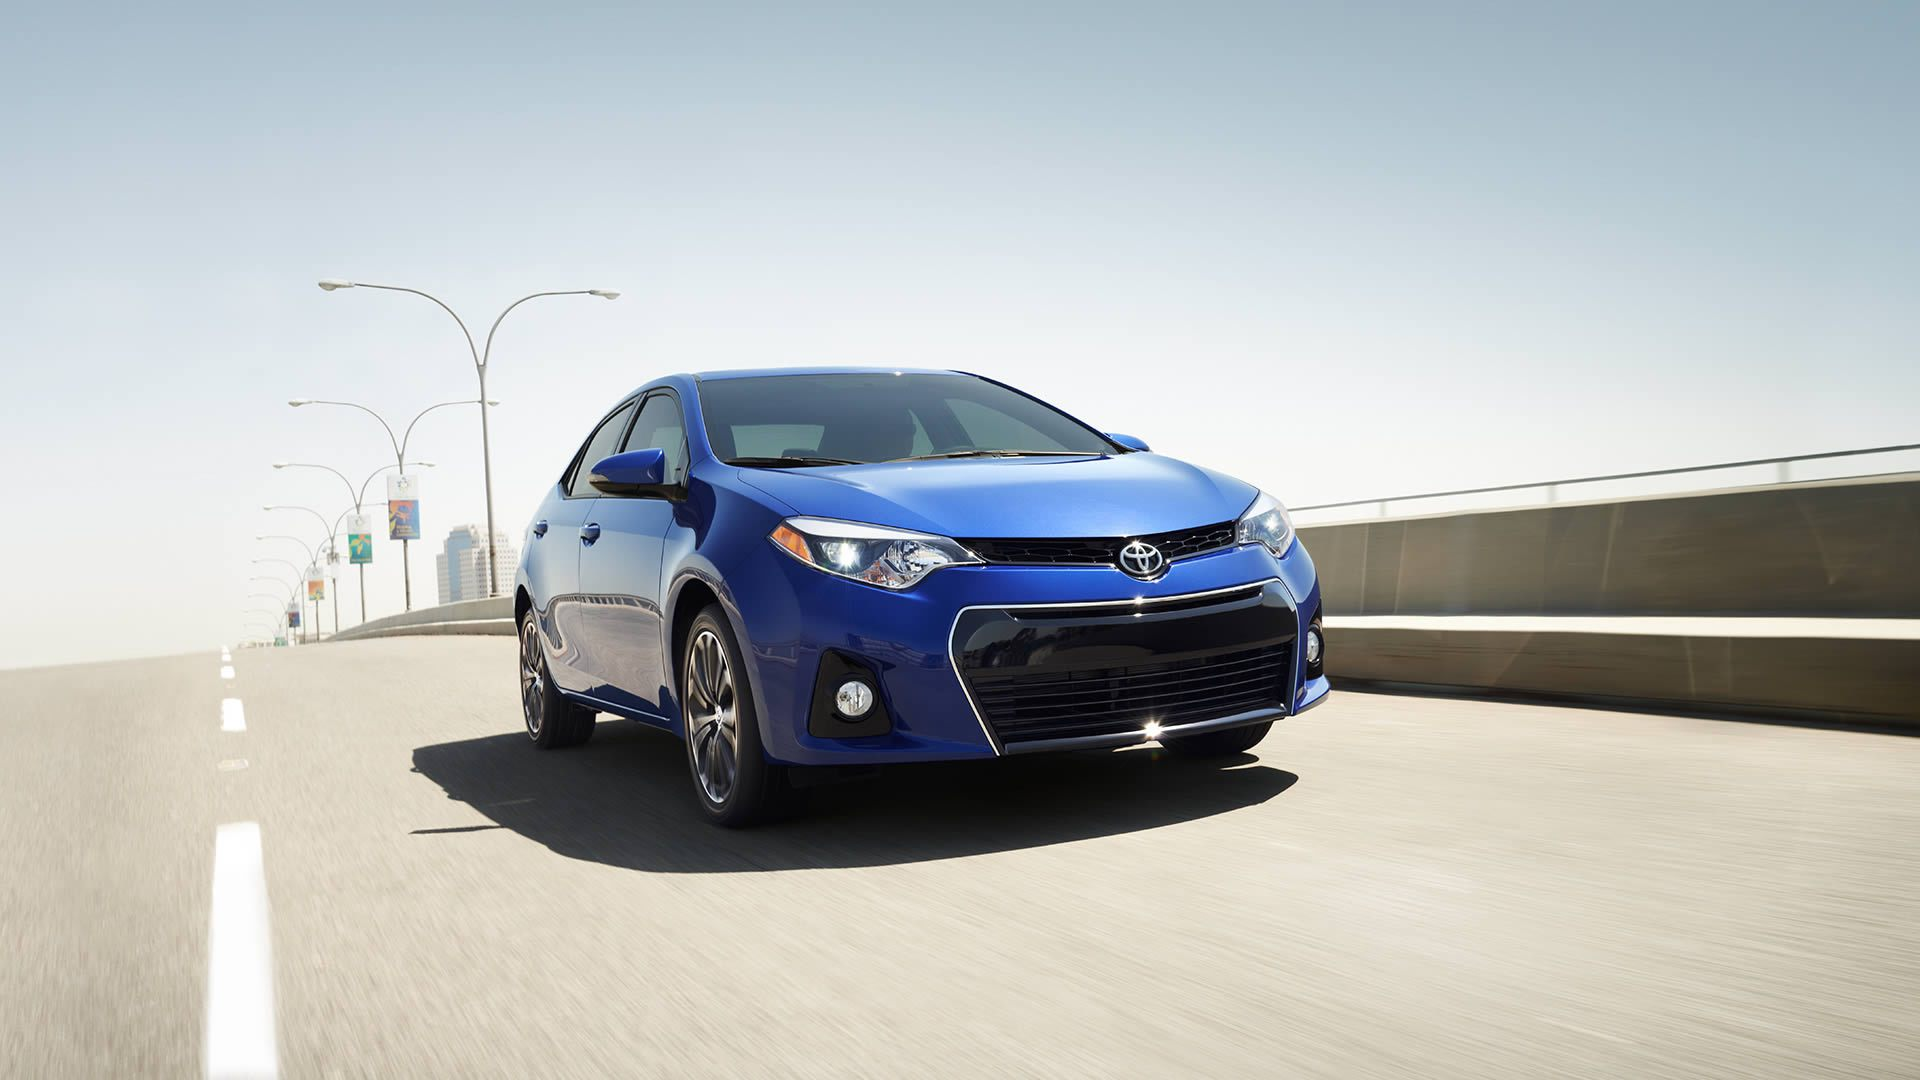 used cars rochester nh toyota corolla image